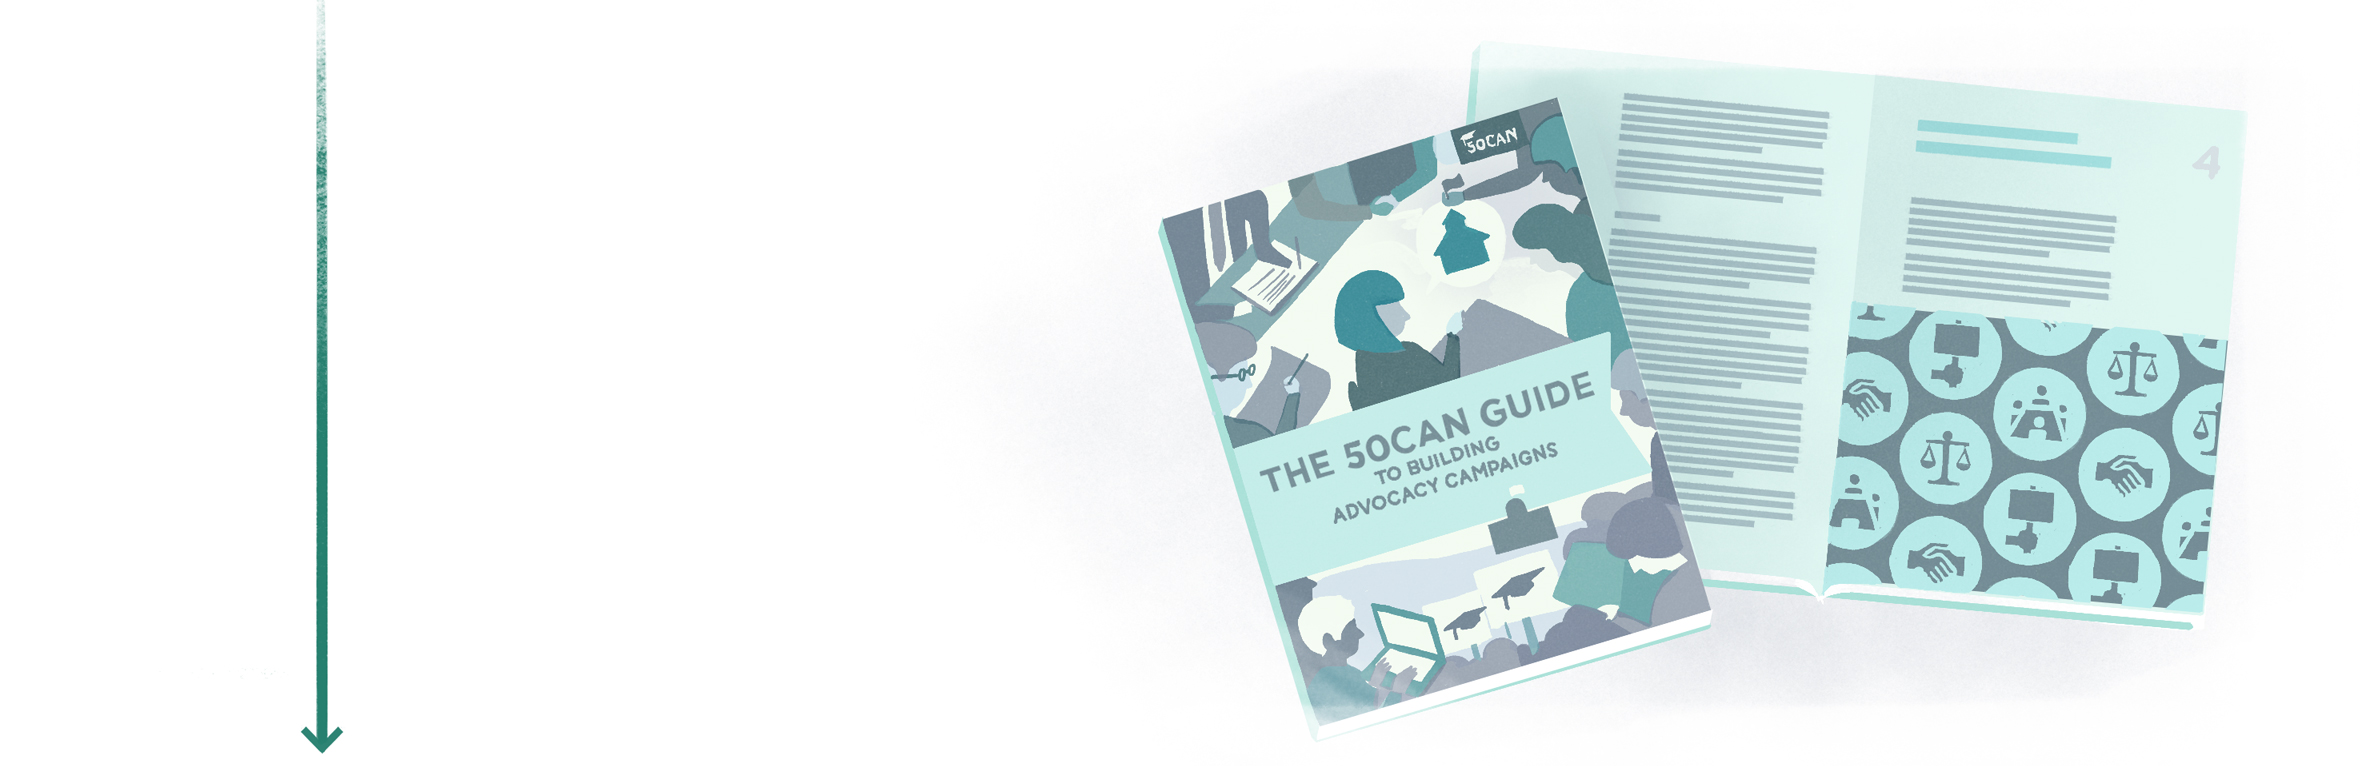 50CAN Guidebook is published